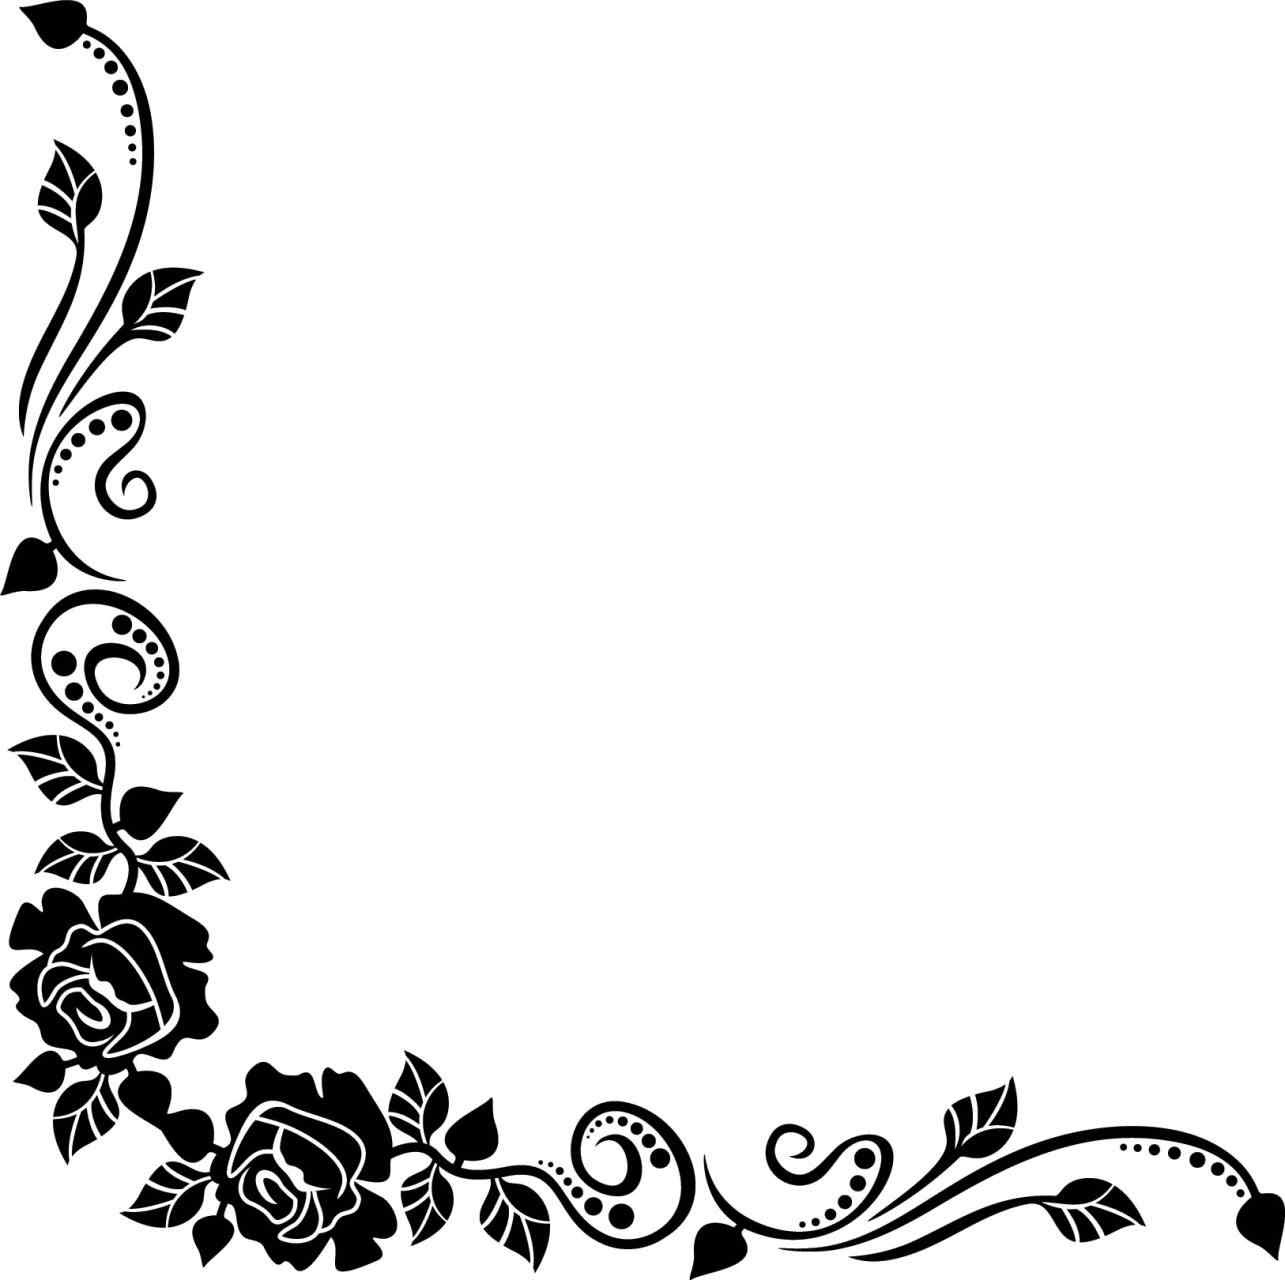 Border Designs In Black And White Elitamydearestco